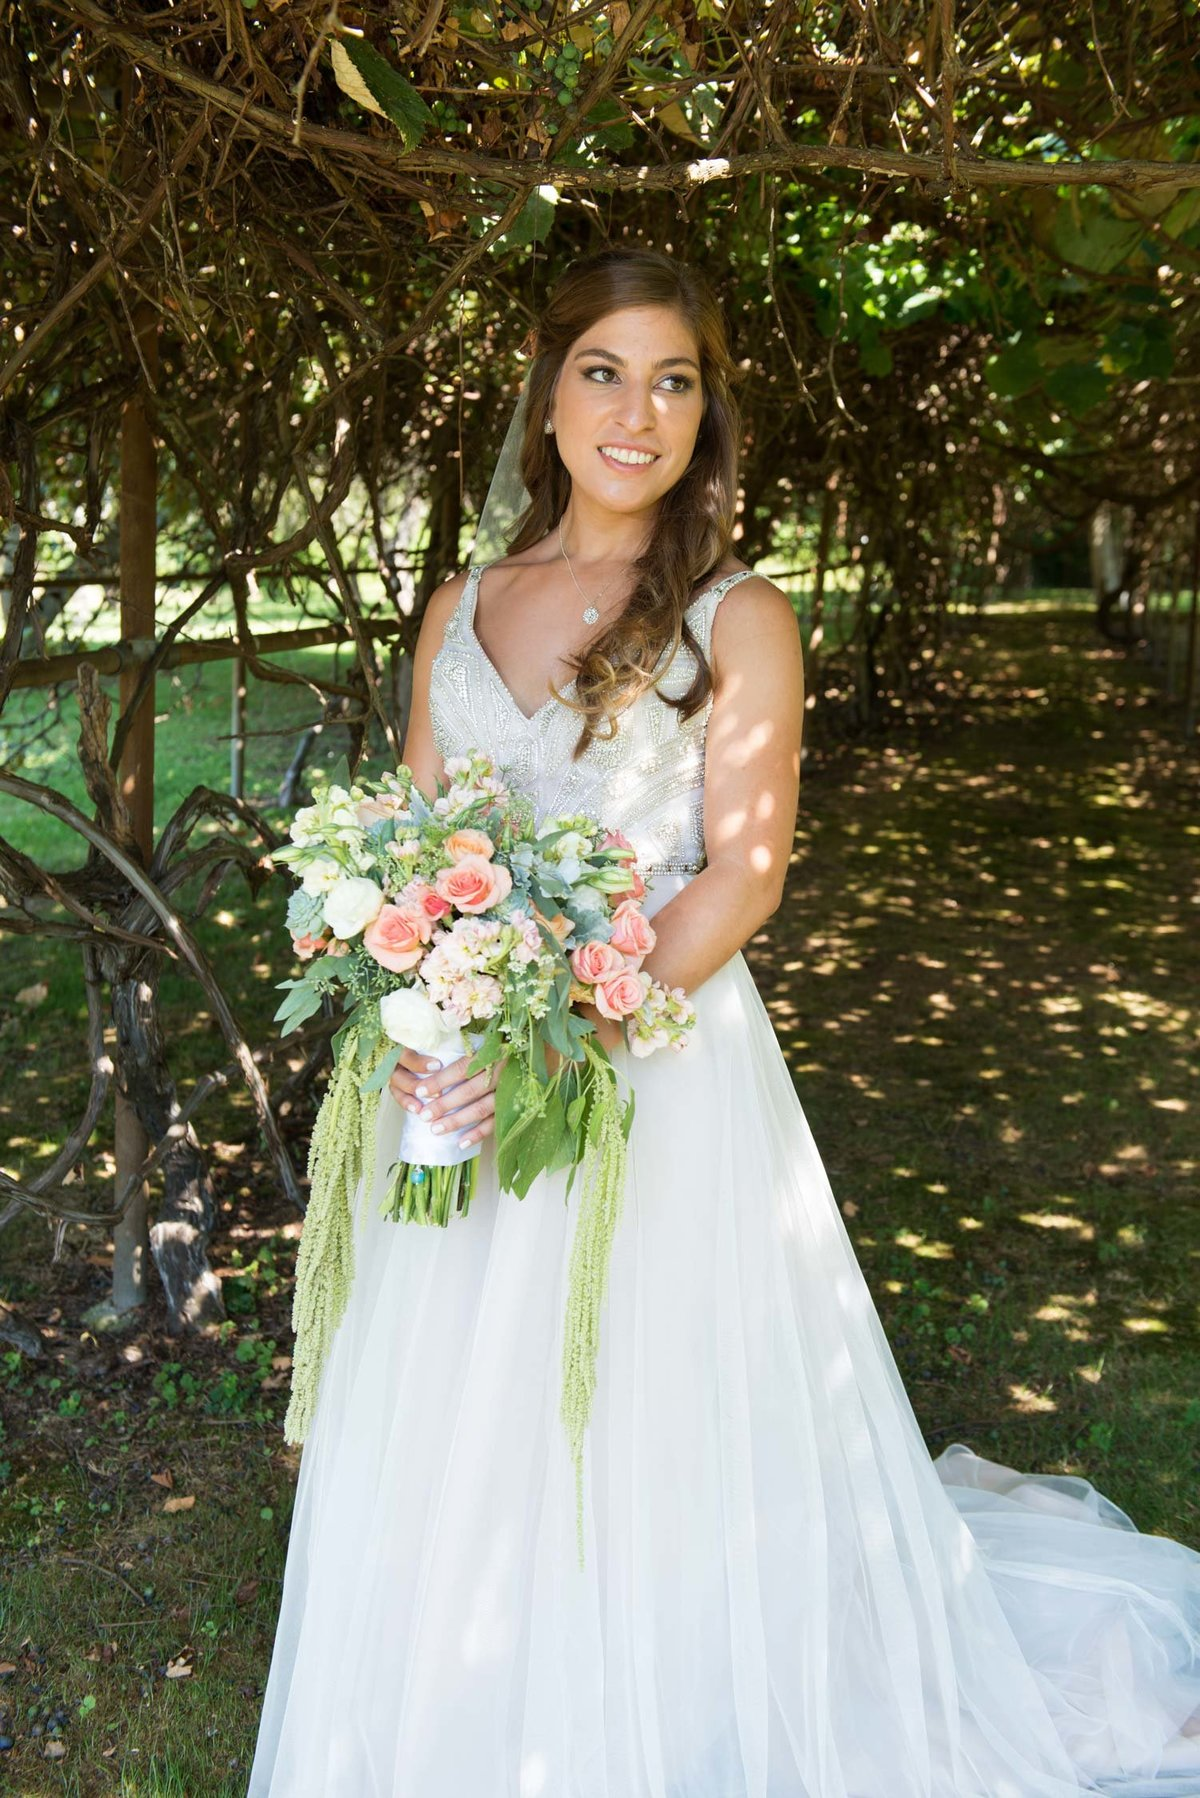 Bride outside holding bouquet at Flowerfield